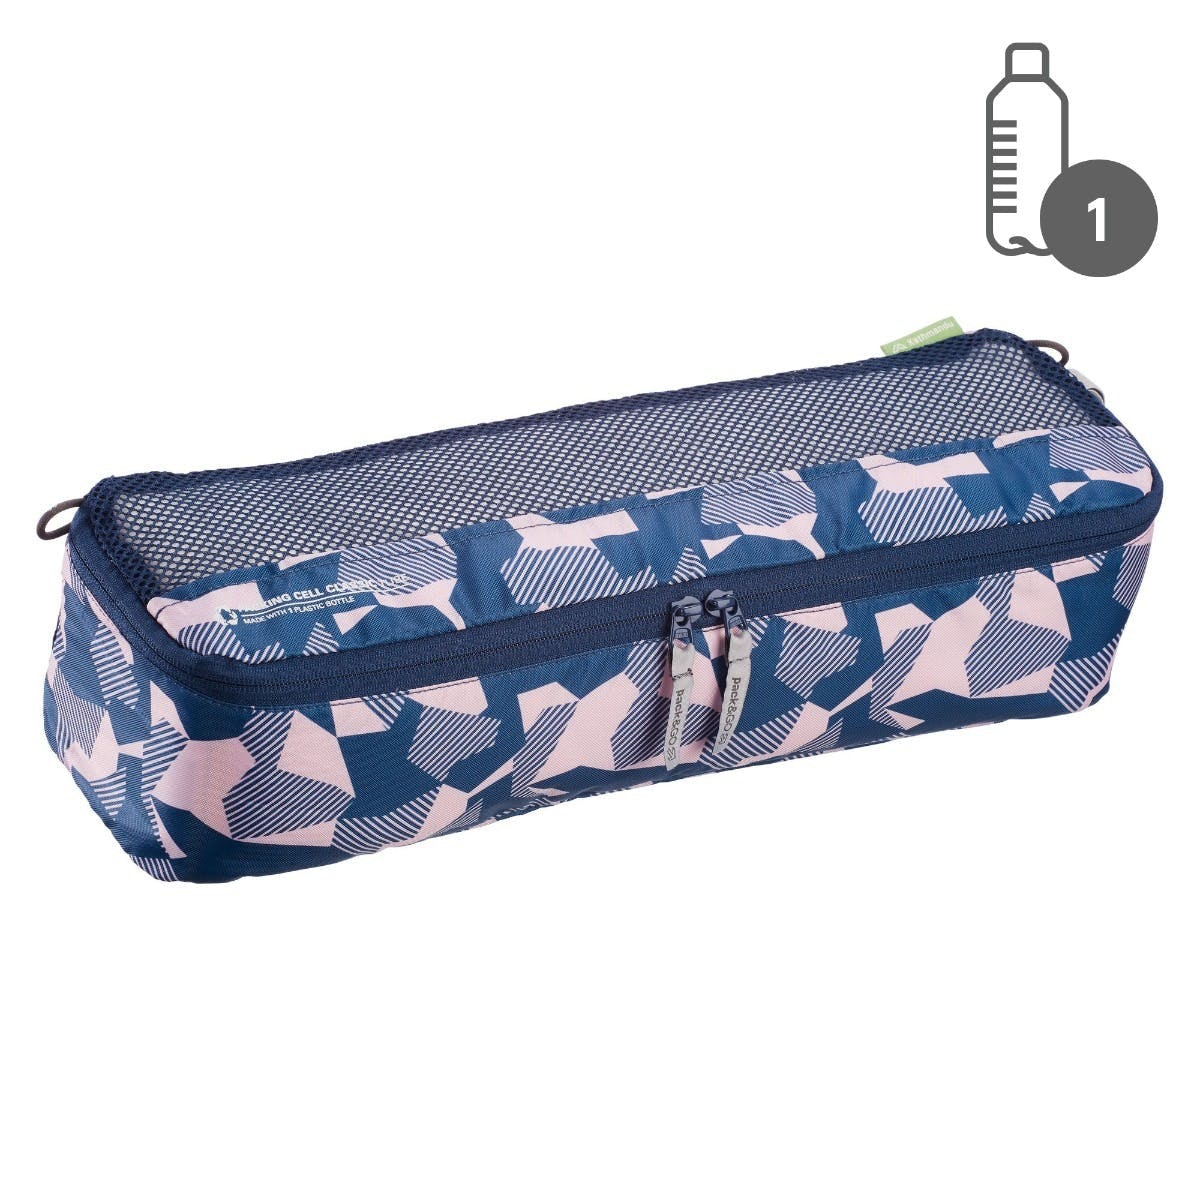 Packing Cells Packing Cubes Cells Travel Luggage Organizers For Suitcases Nz